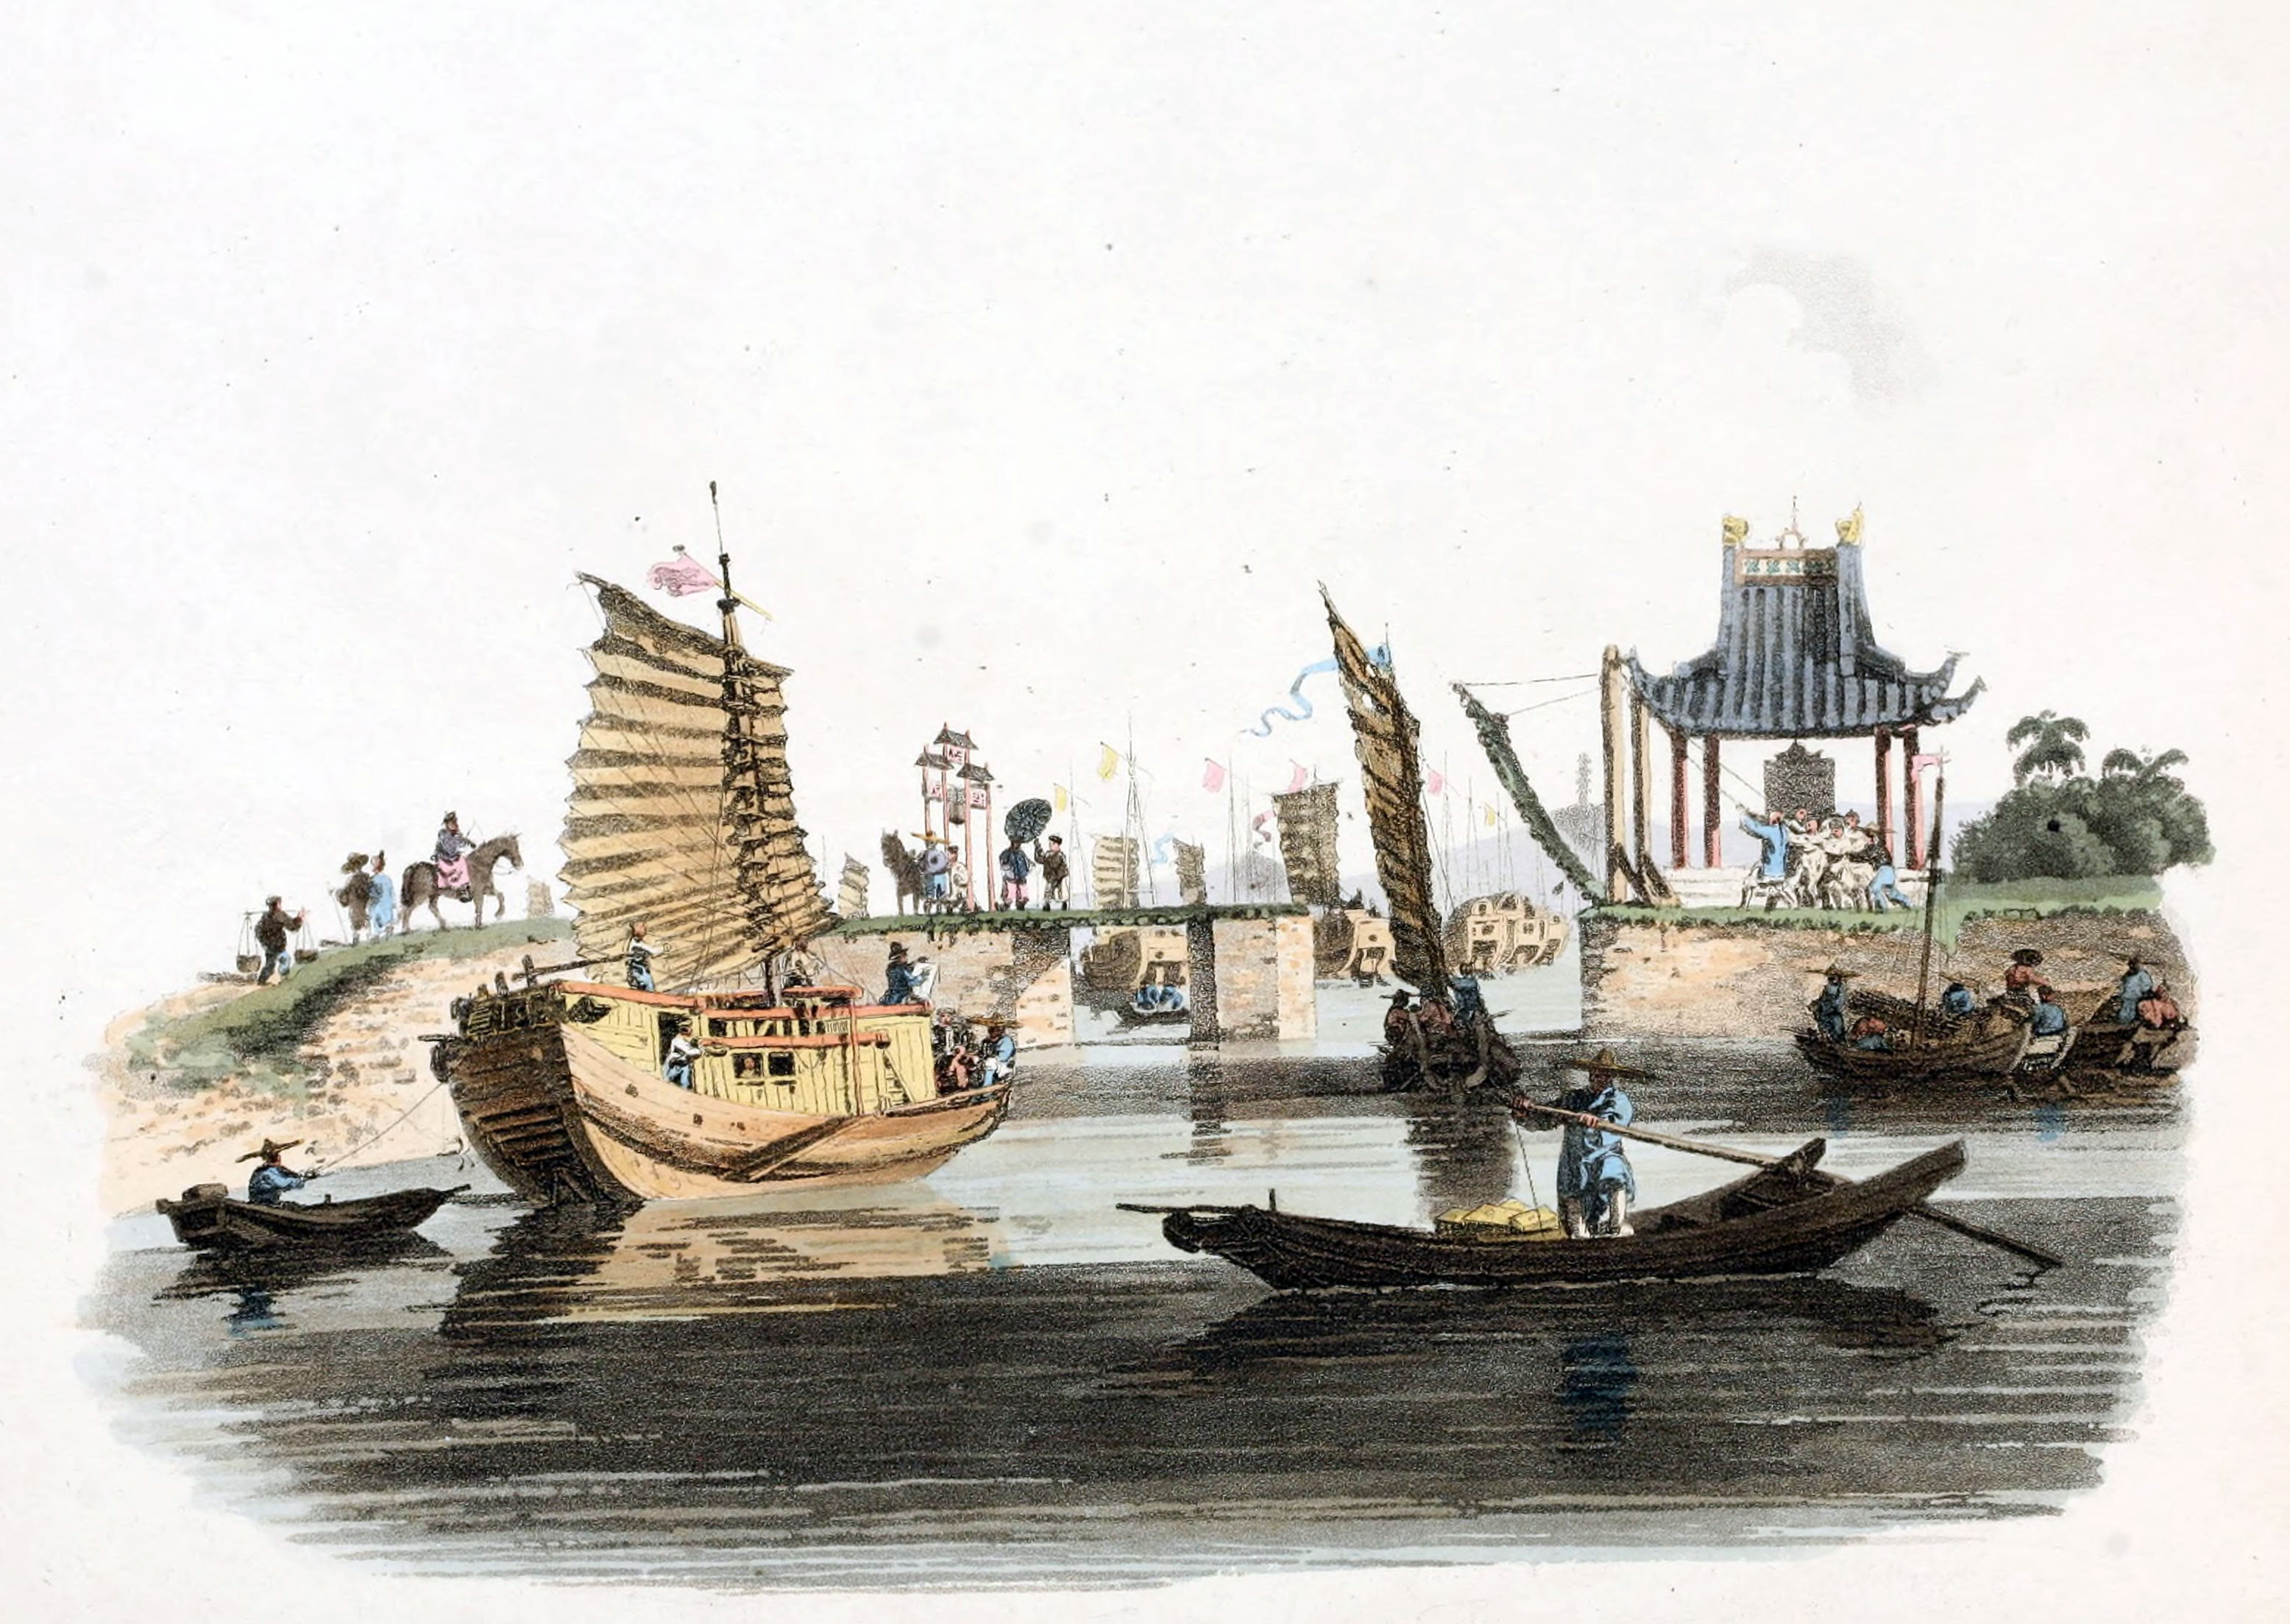 Grand Canal of China, 1793